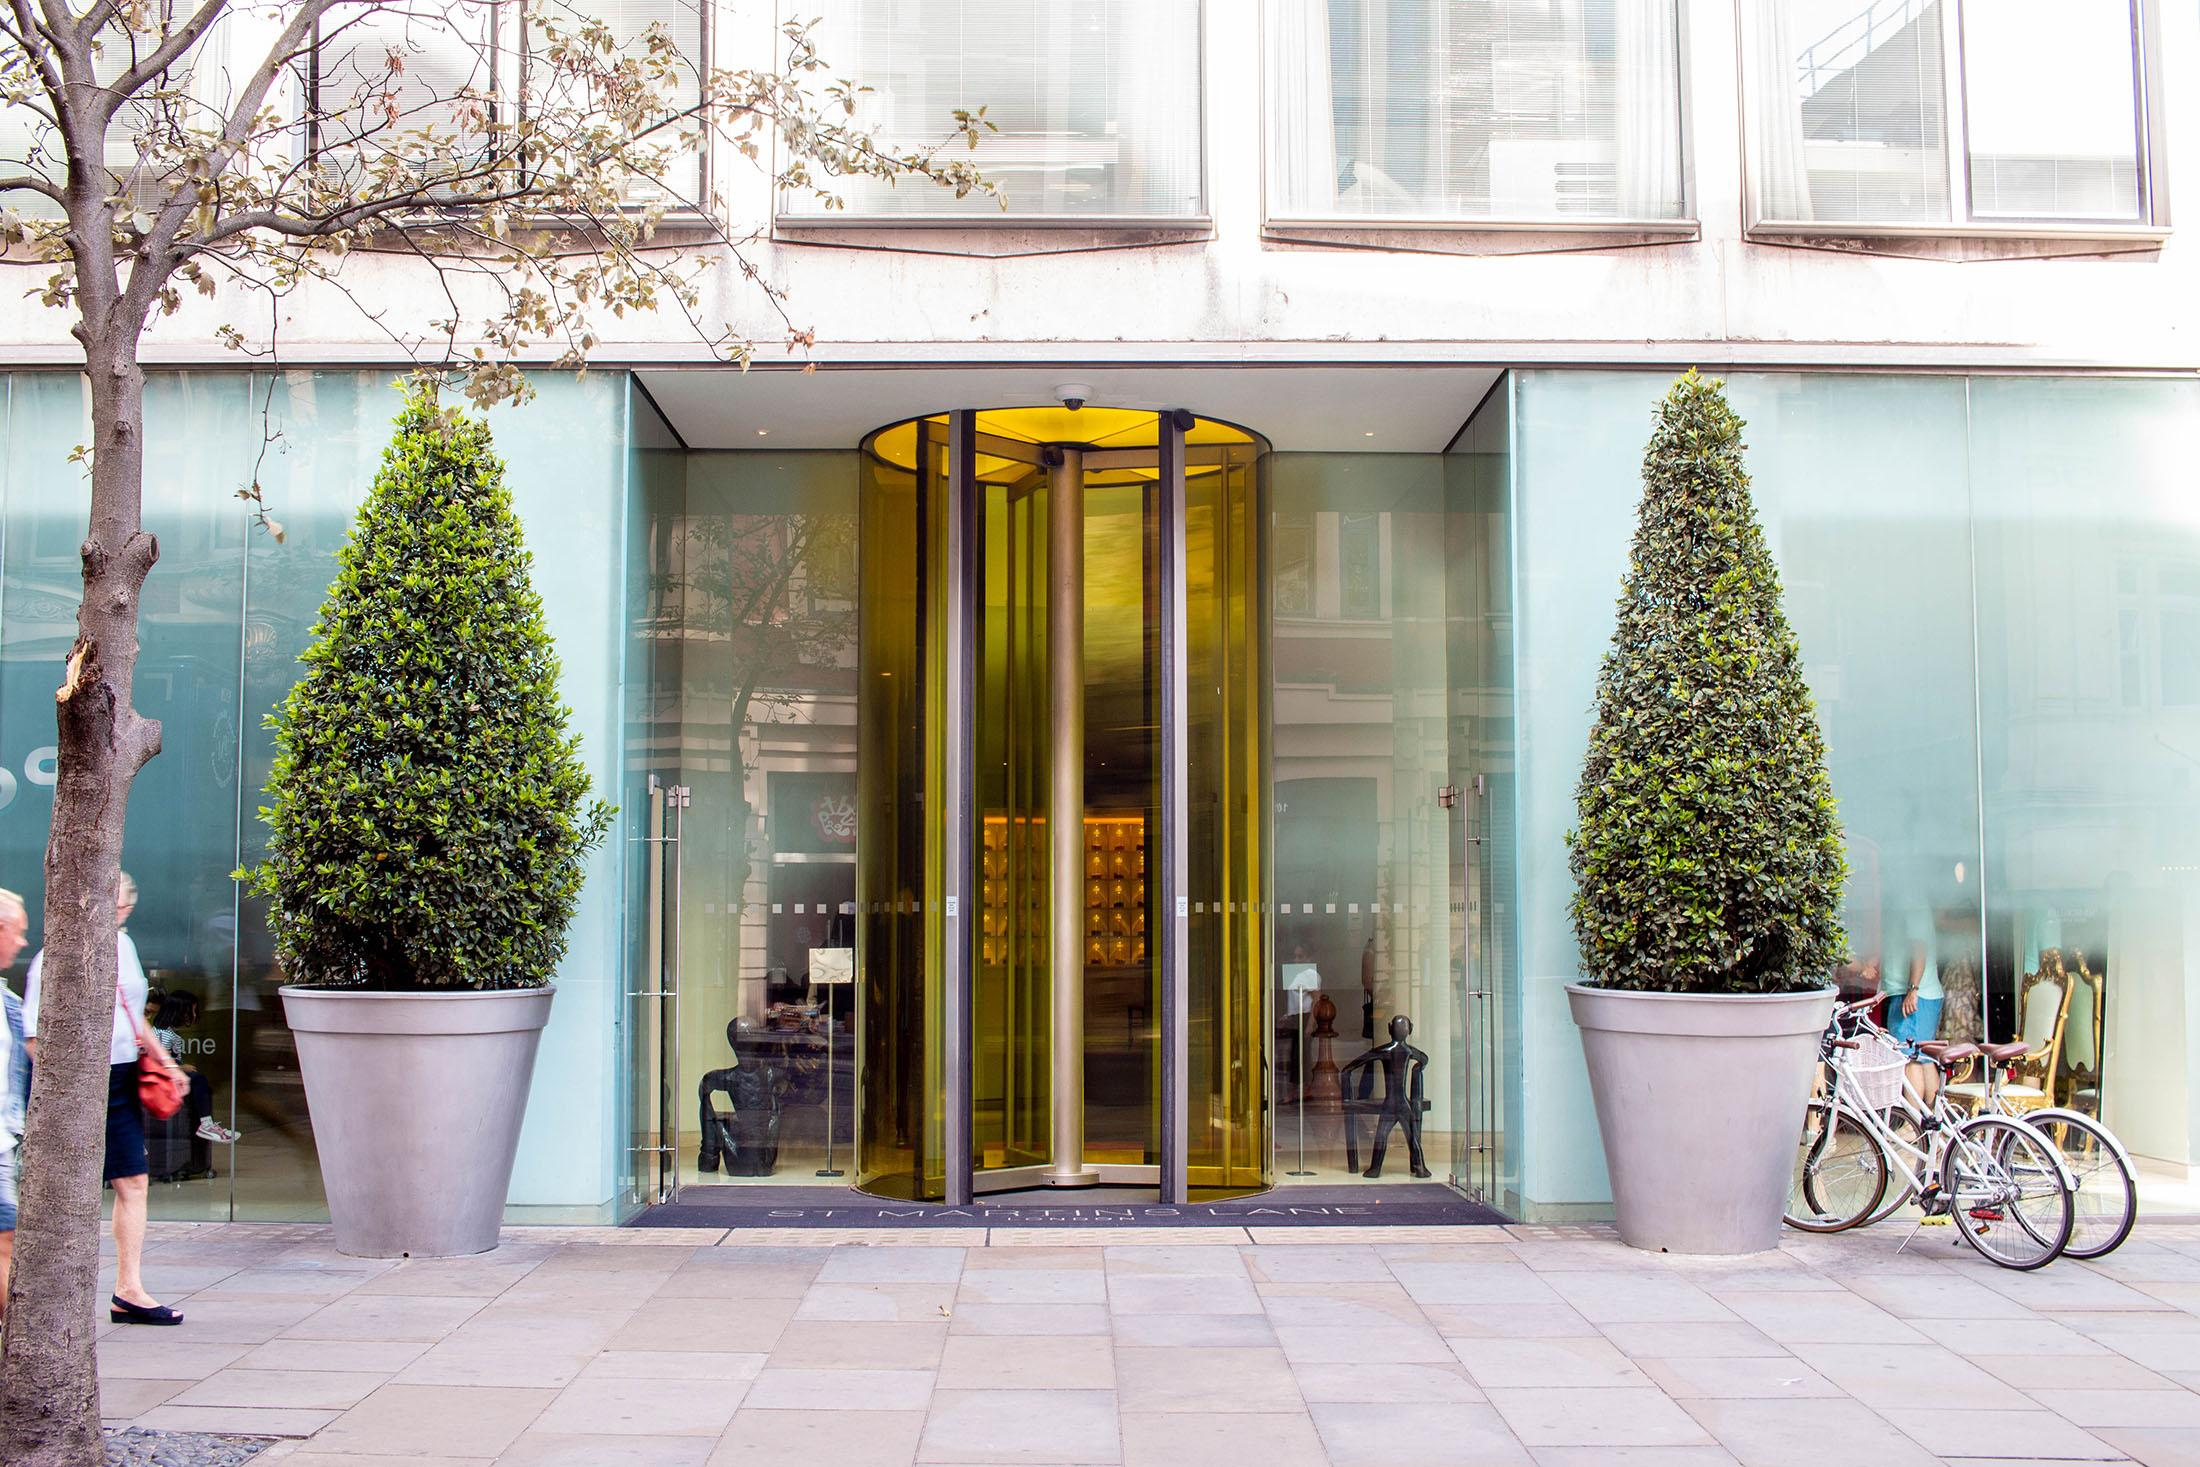 revolving door entrance to St Martins Lane hotel